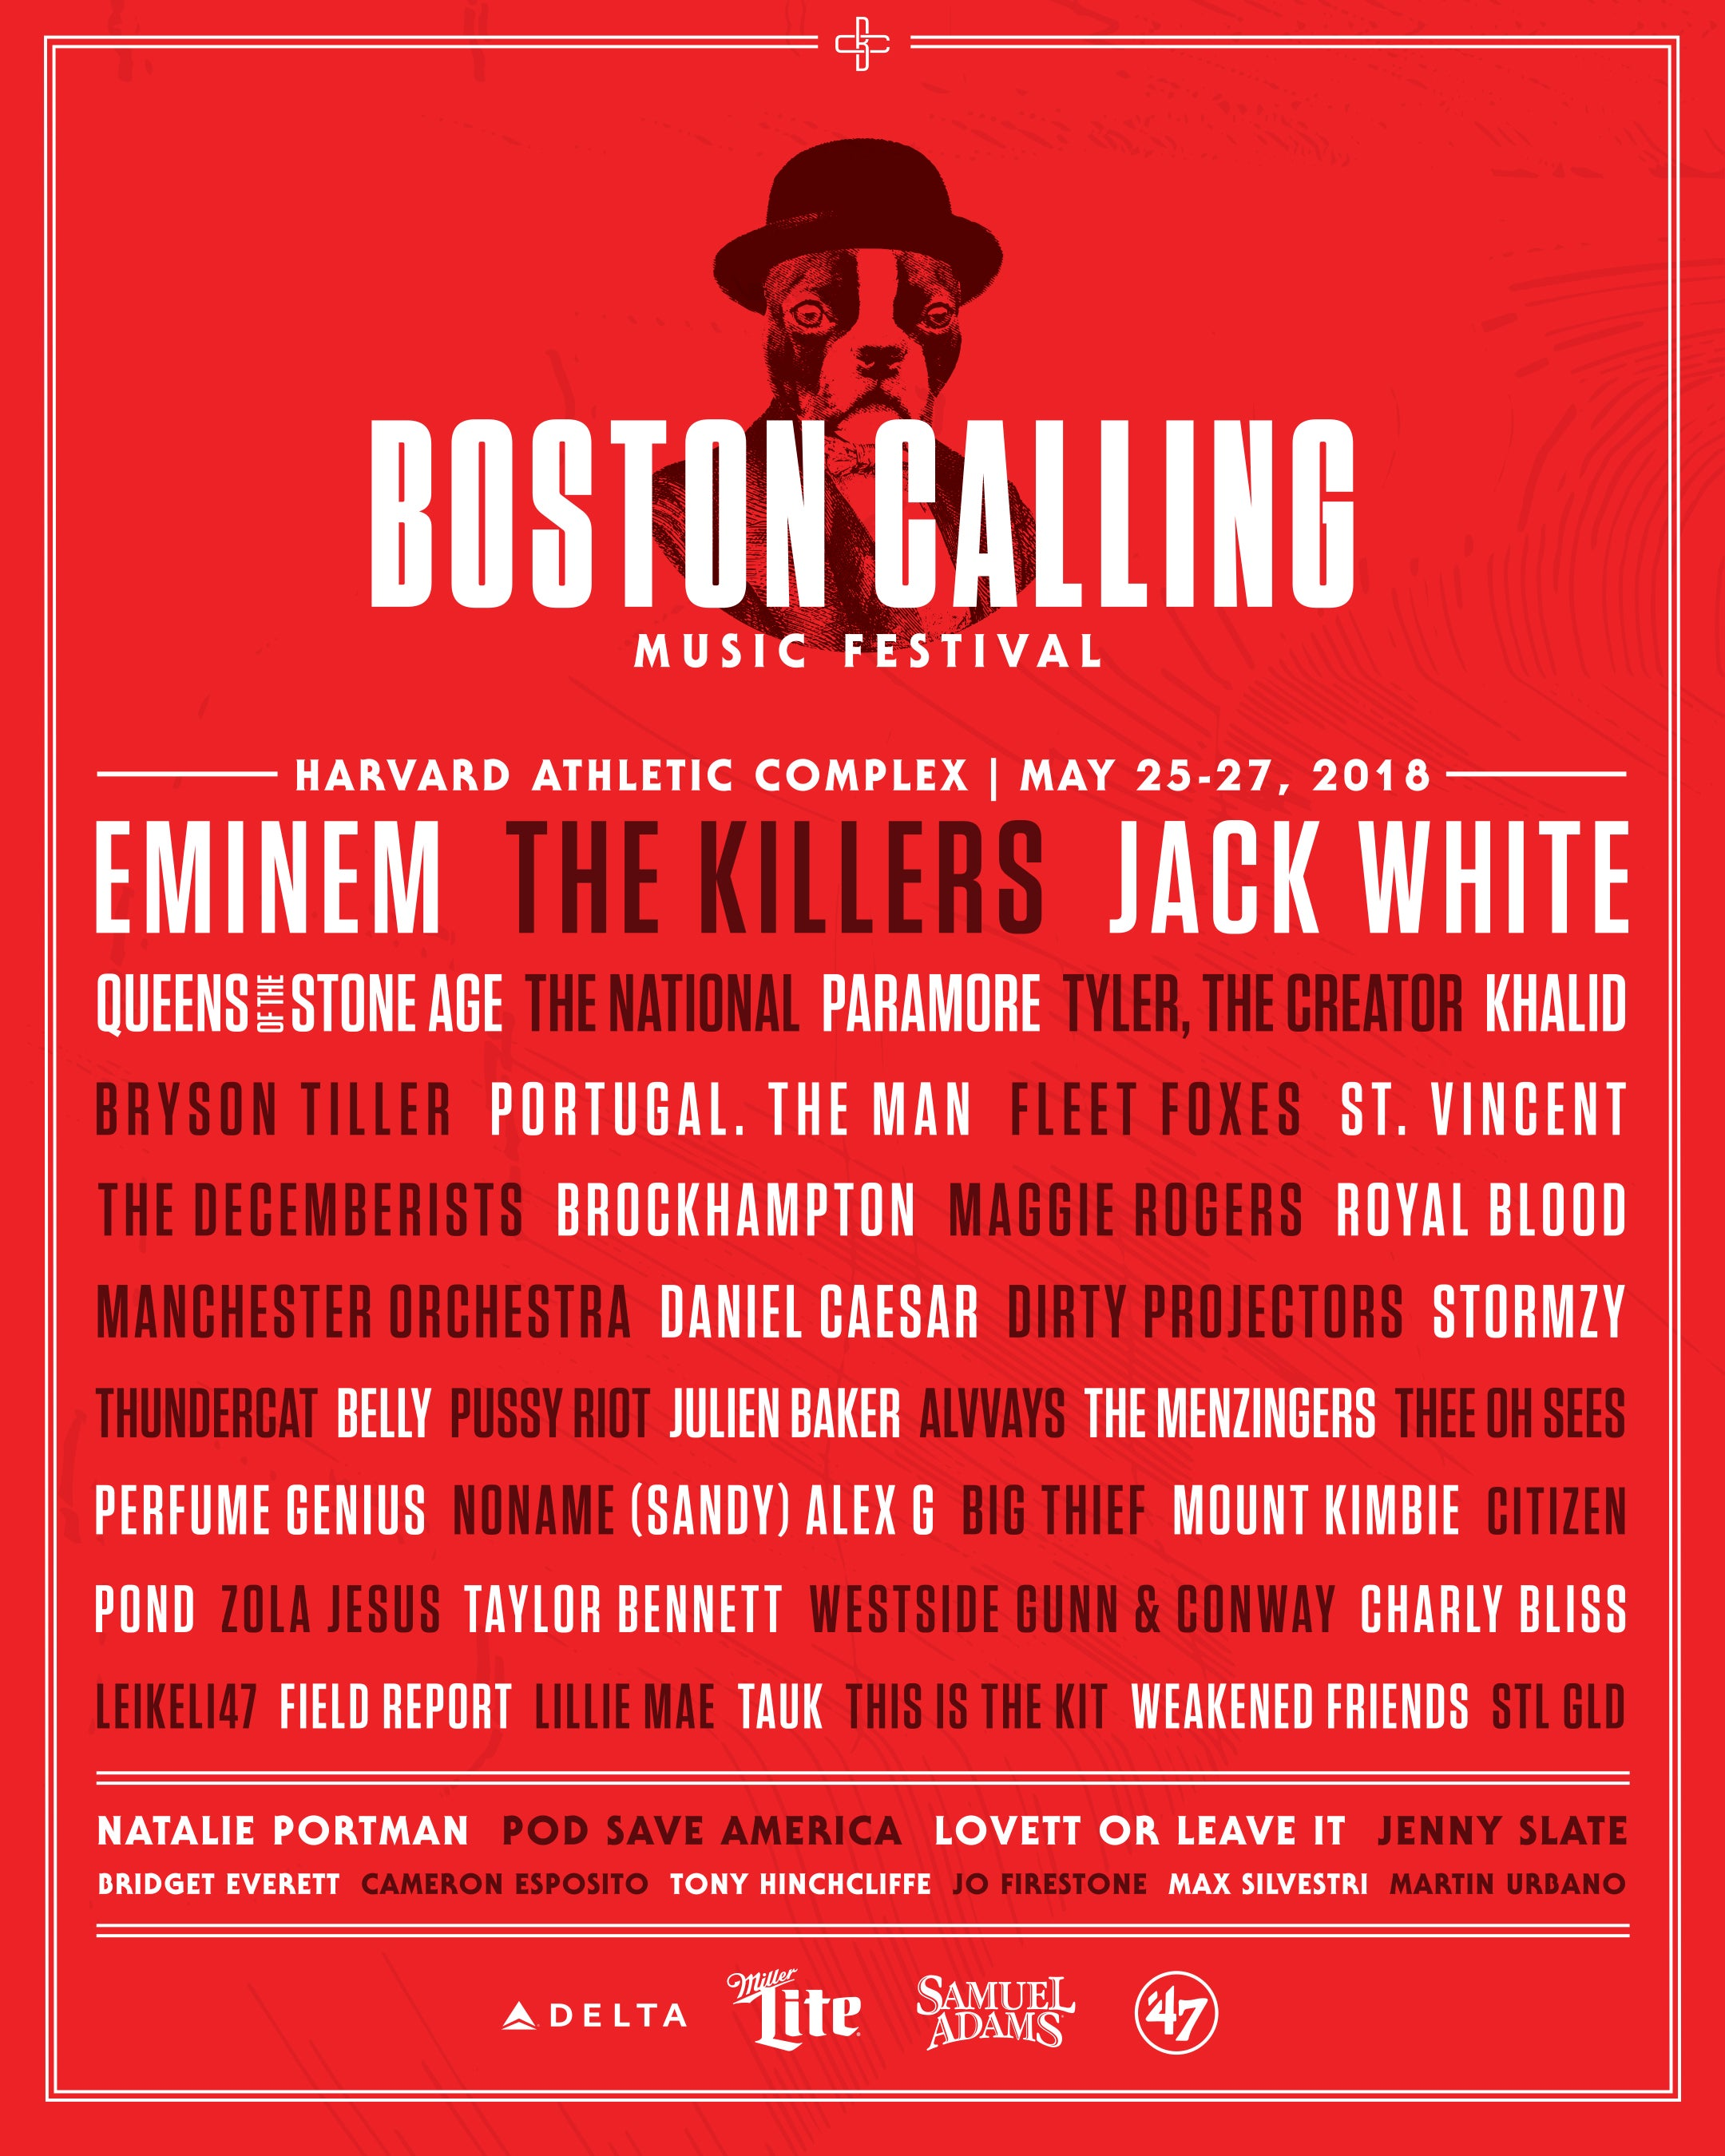 The 2018 Boston Calling lineup.